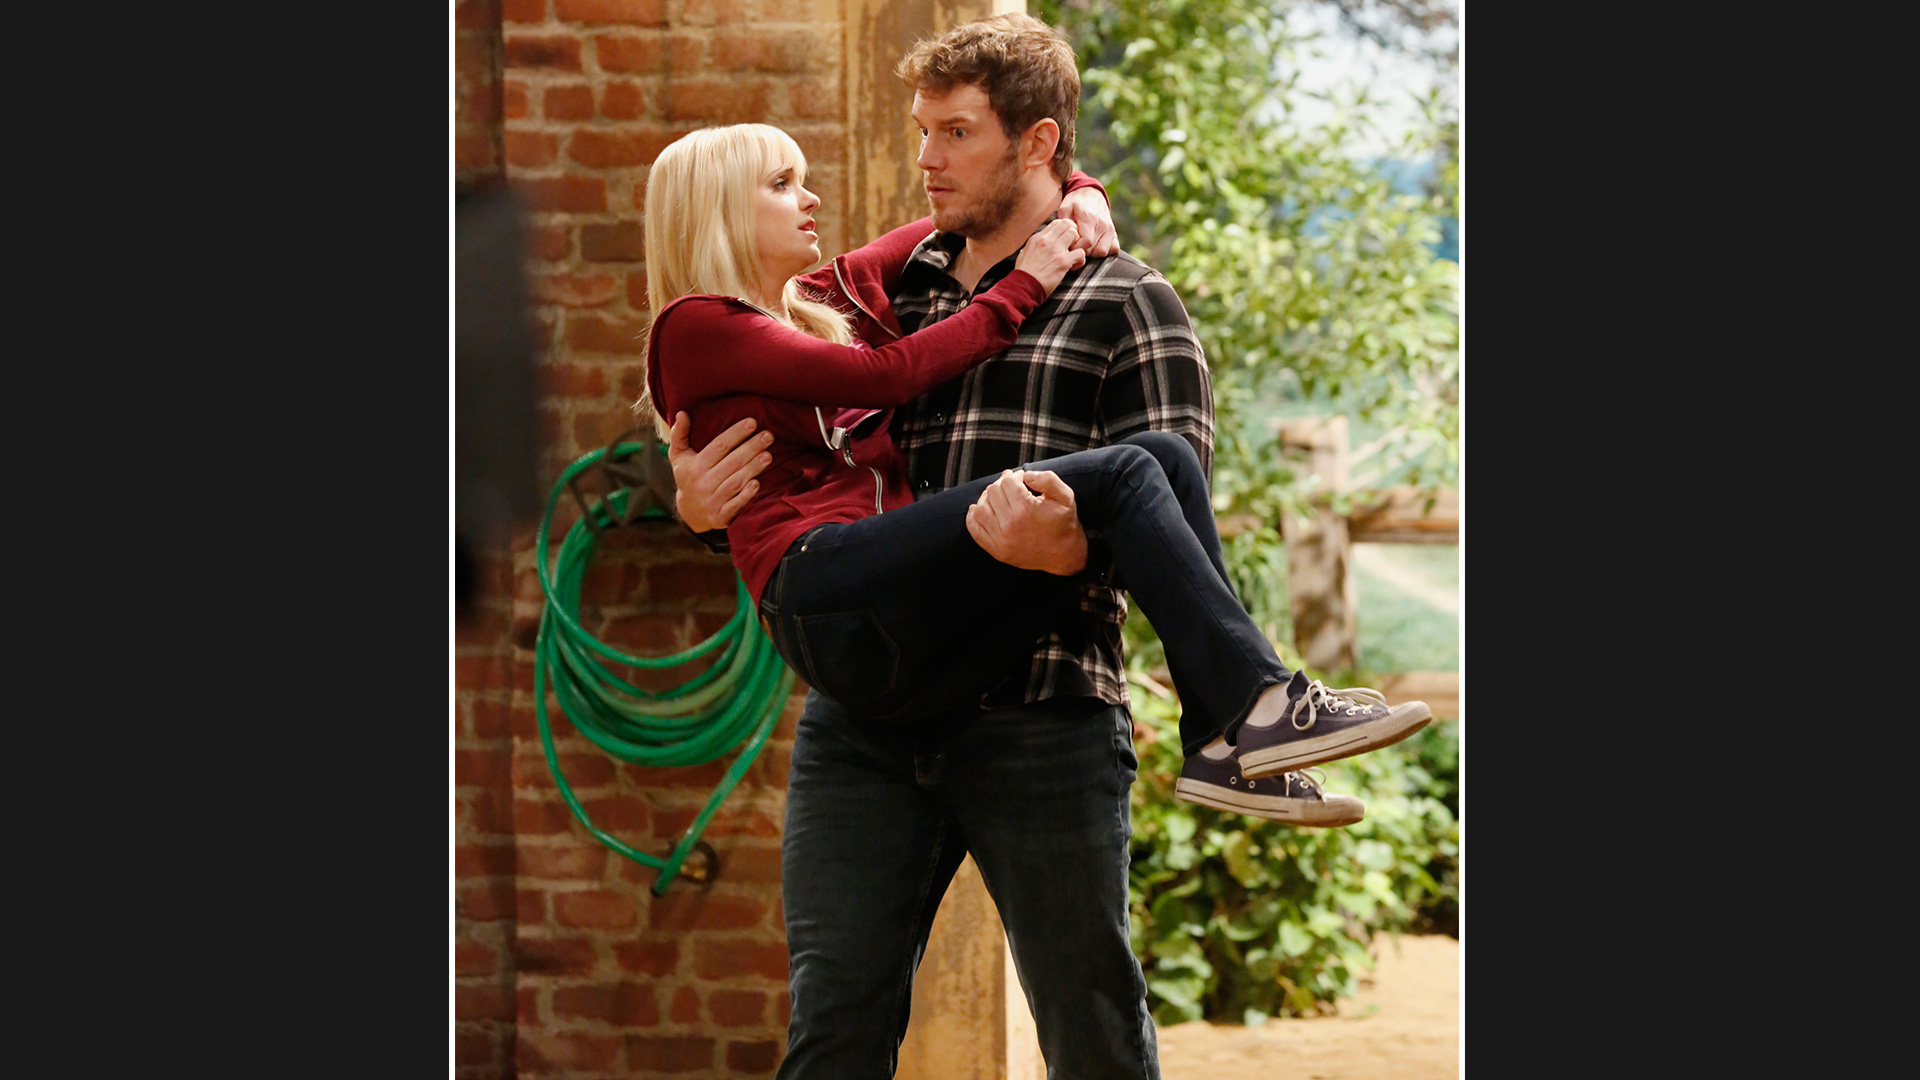 Nick carries Christy back into the stables like a true gentleman.